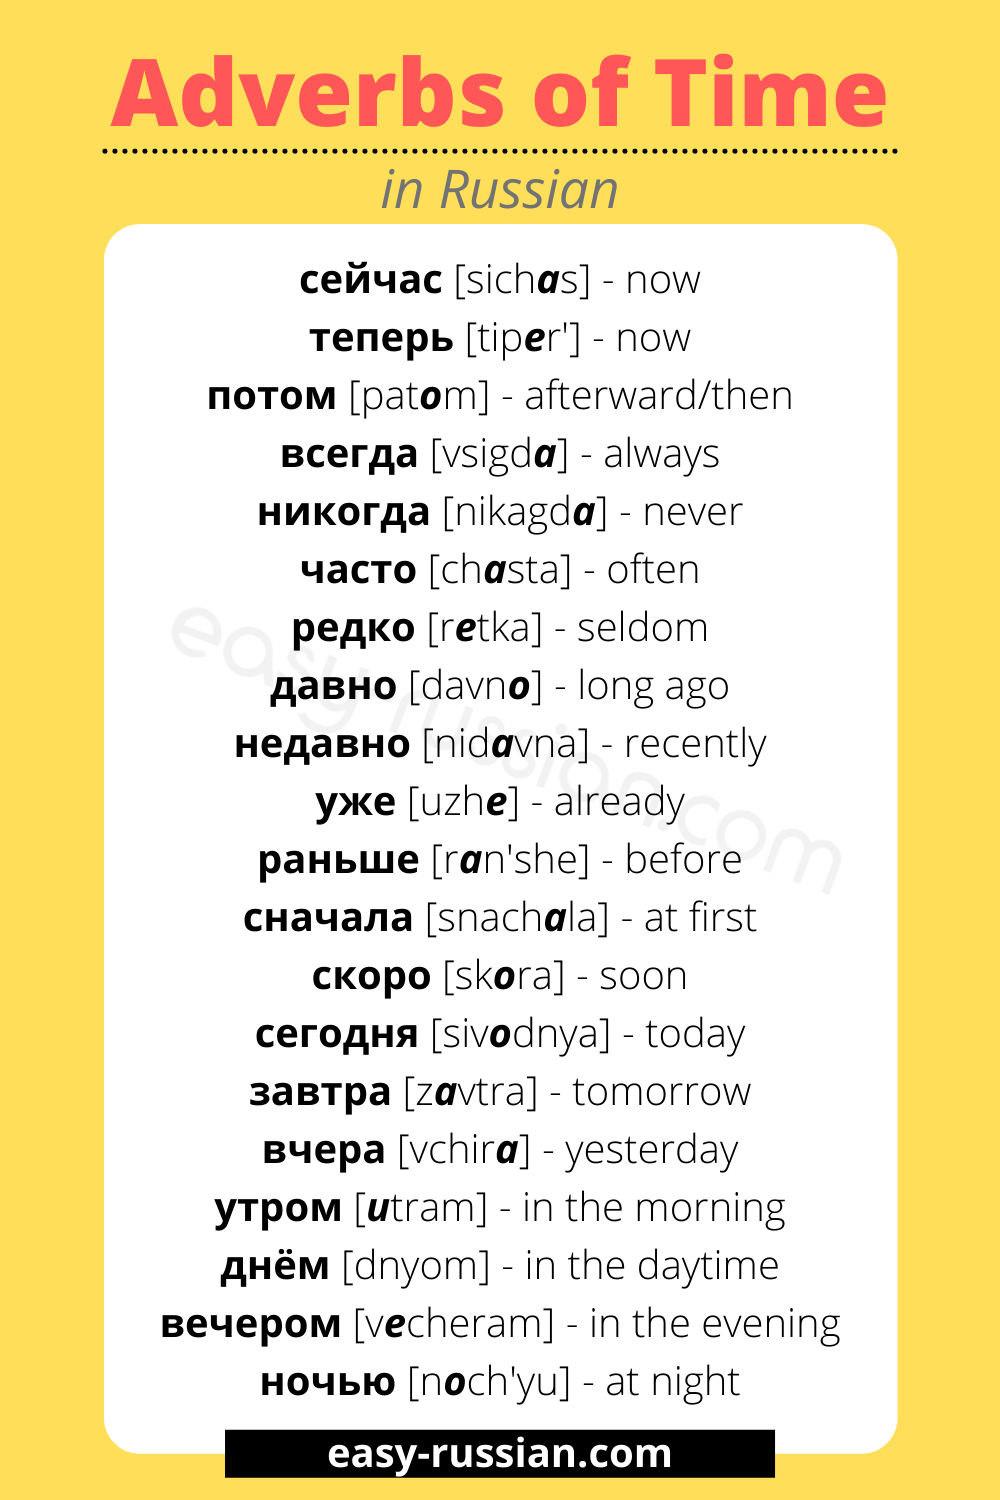 adverbs of time in russian